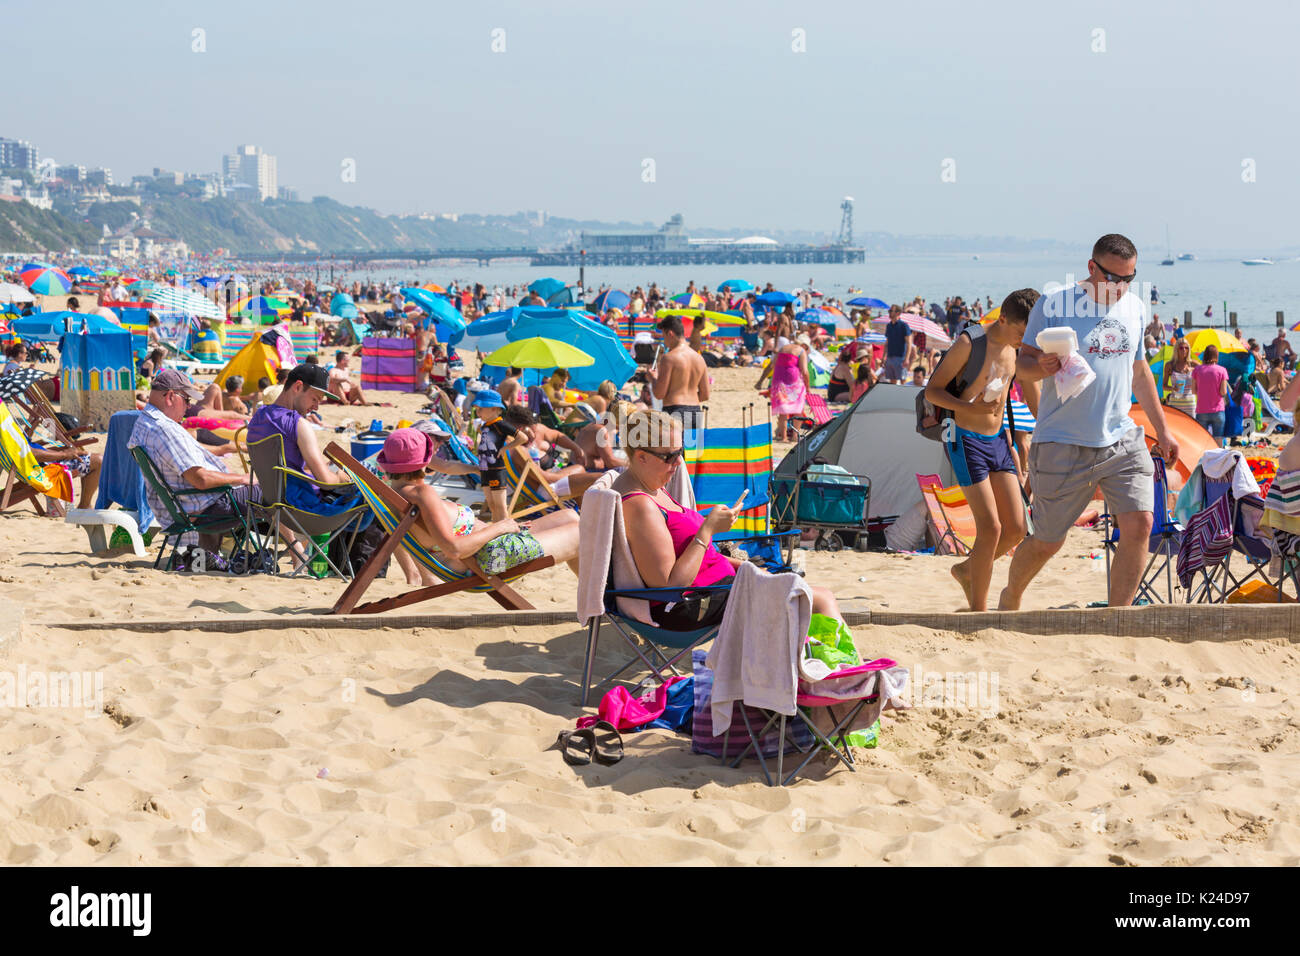 Bournemouth, Dorset, UK. 28th August, 2017. UK weather: lovely warm sunny day at Bournemouth, as crowds flock to the seaside as temperatures soar. Alum Chine beach, Bournemouth looking towards Bournemouth and the Pier. Credit: Carolyn Jenkins/Alamy Live News - Stock Image